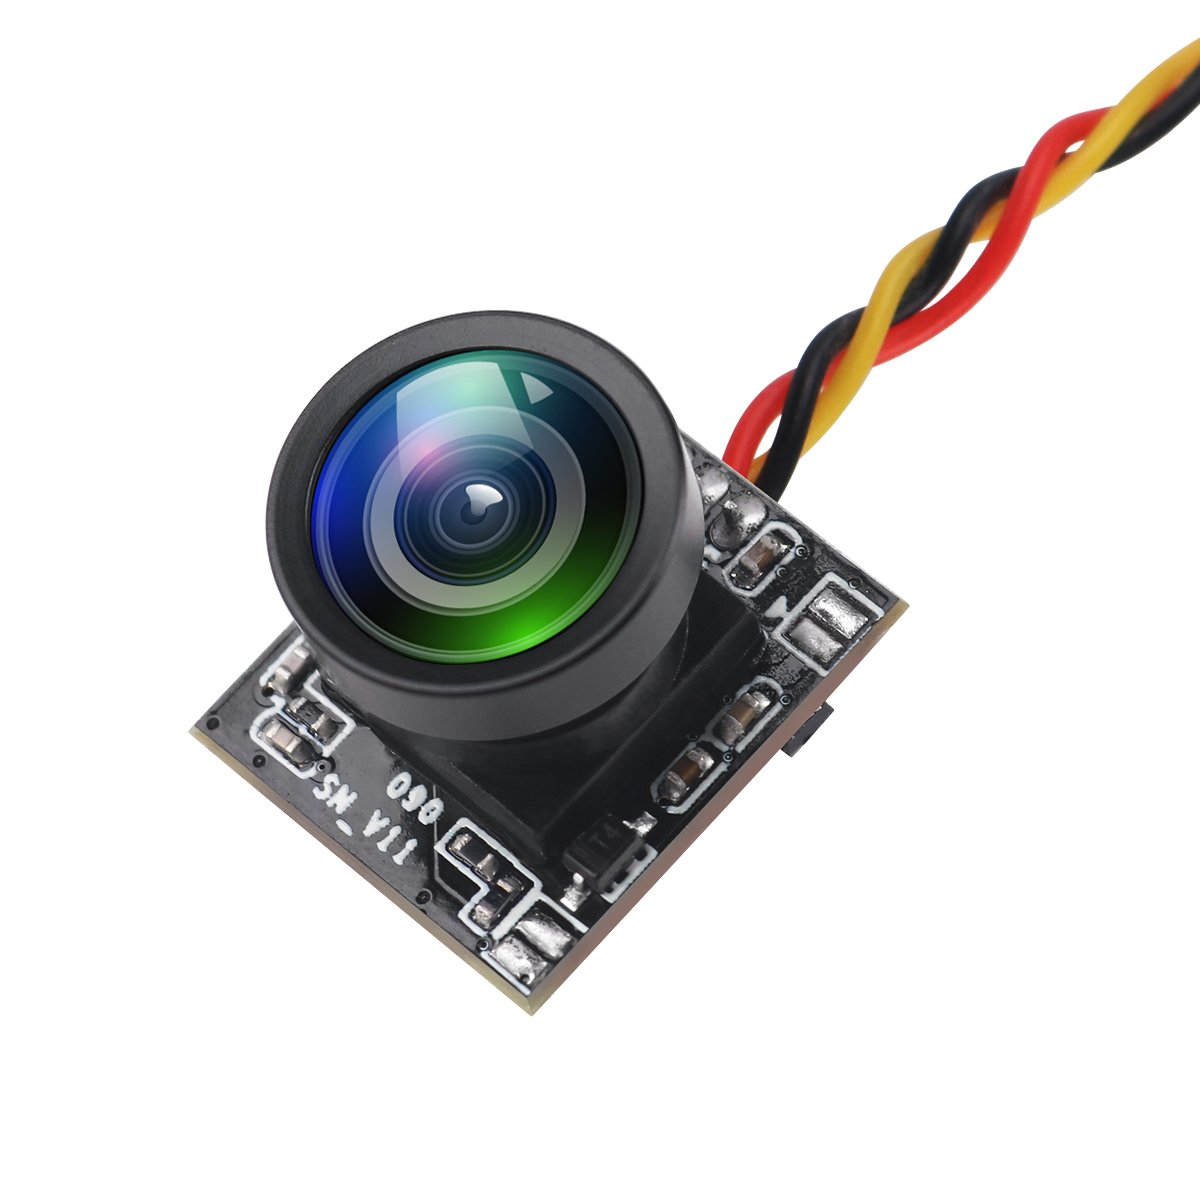 Crazepony Mini FPV Camera Turbowing 720TVL HD Camera 120 Degree NTSC/PAL Switchable CMOS Camera with Protective Shell for Racing Drone Multicopter Quadcopter